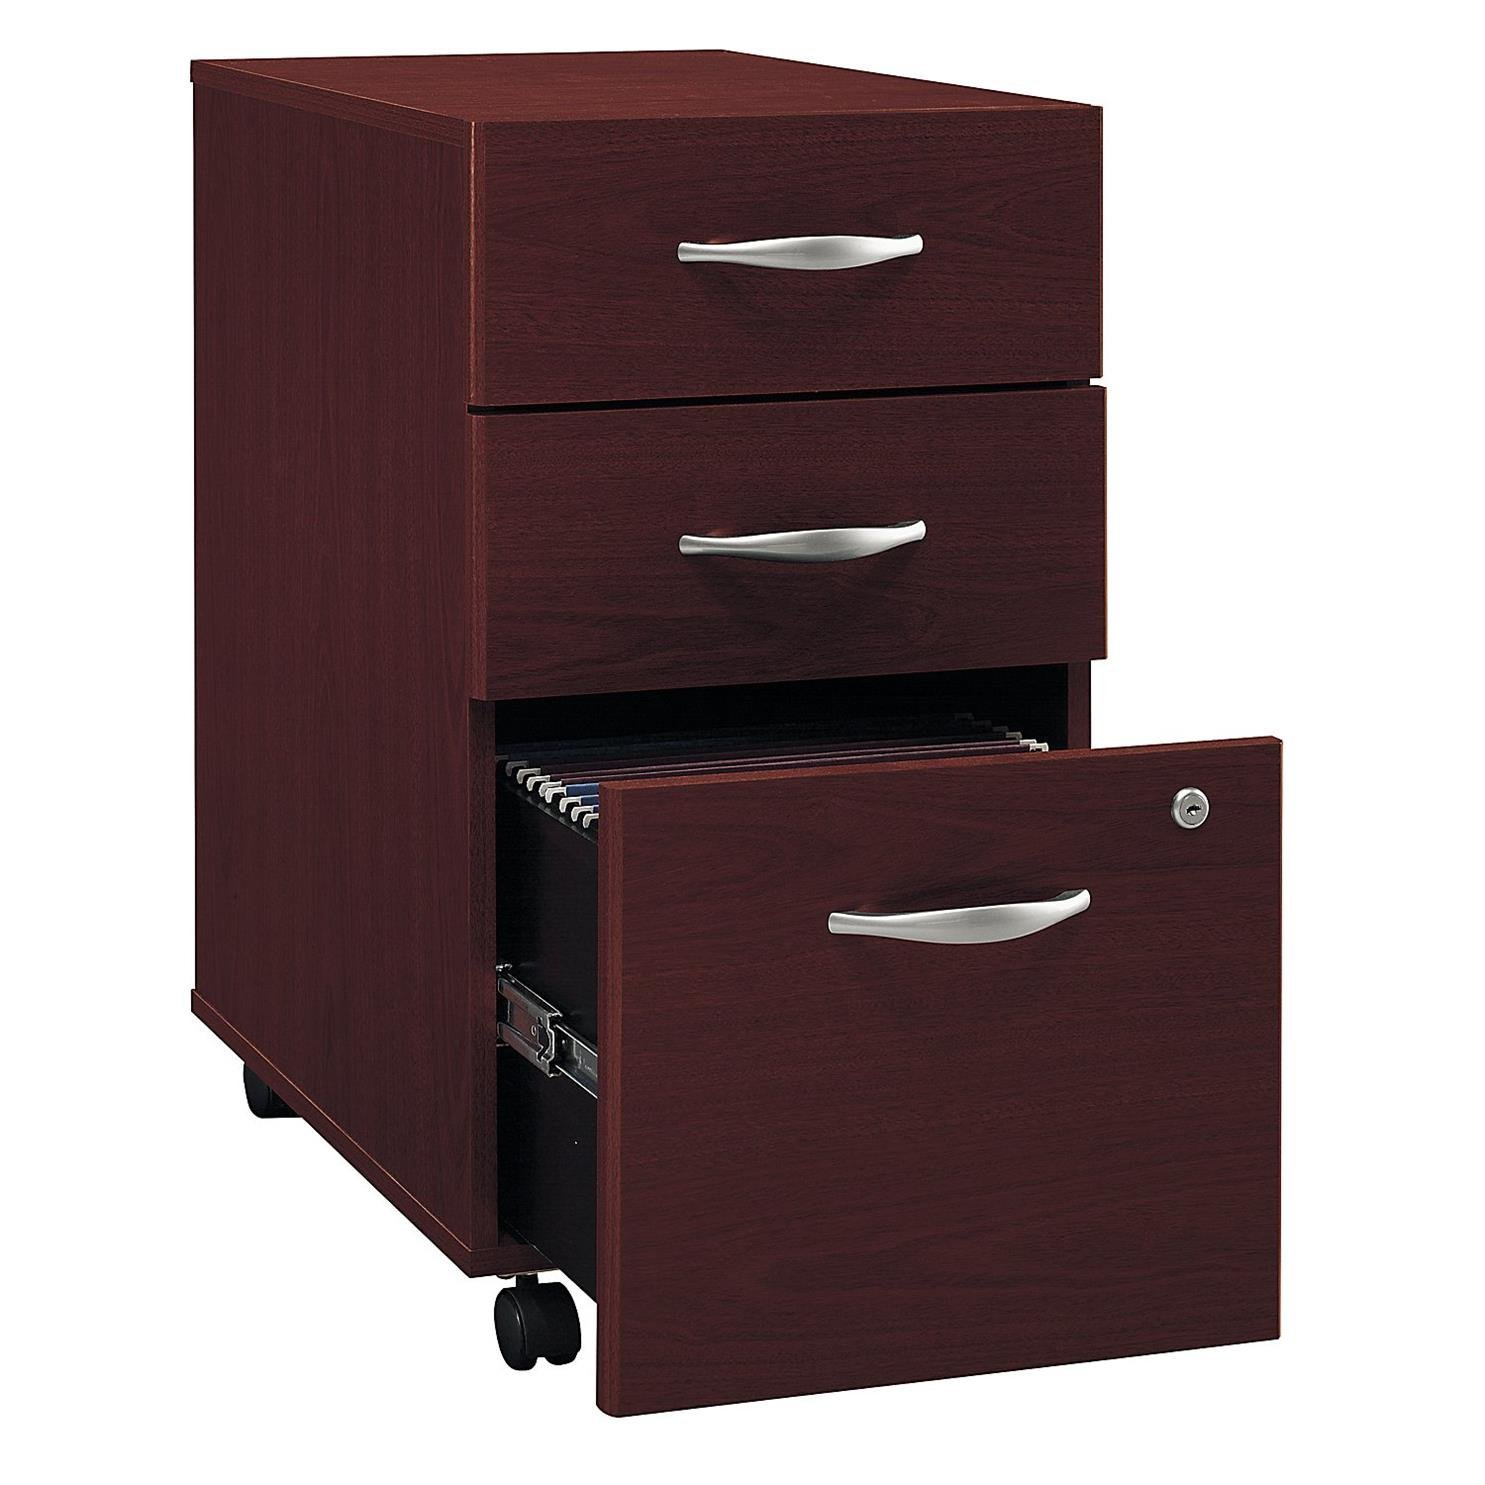 rolling file cabinets top 11 rolling file cabinet and cart models for your home 25625